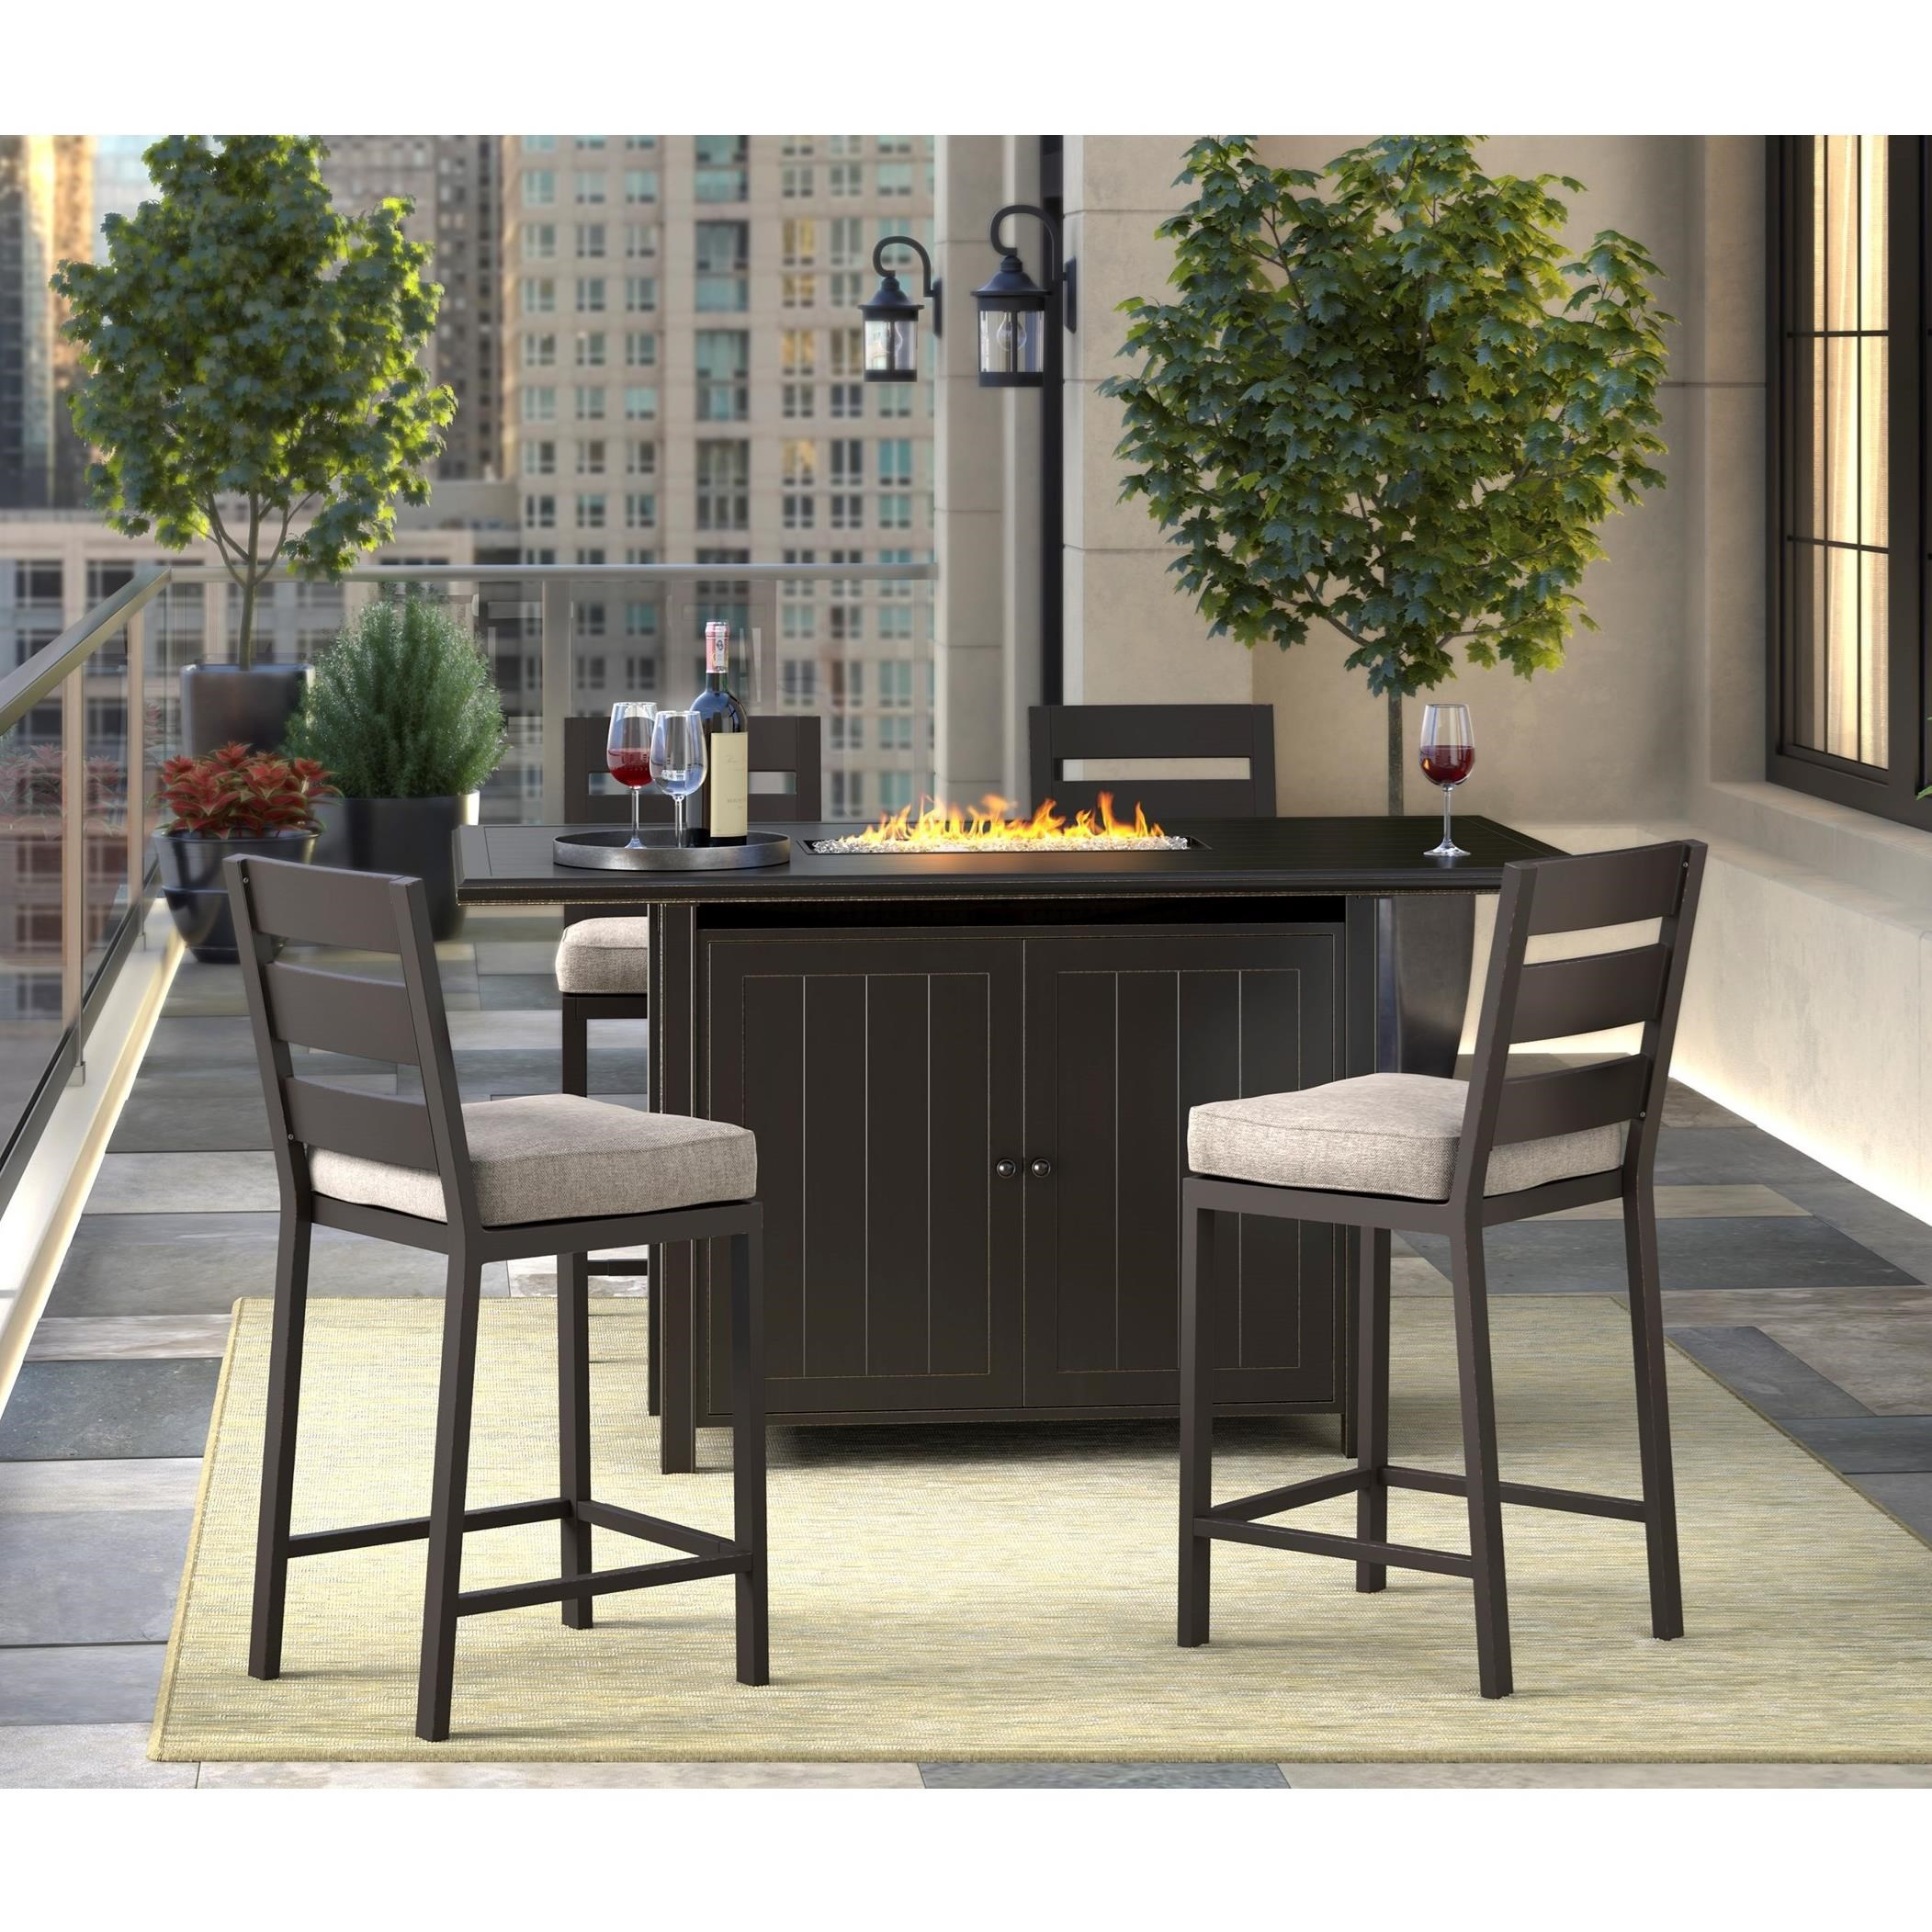 Ashley Furniture Dinette Set: Signature Design By Ashley Perrymount 5 Piece Pub Dining